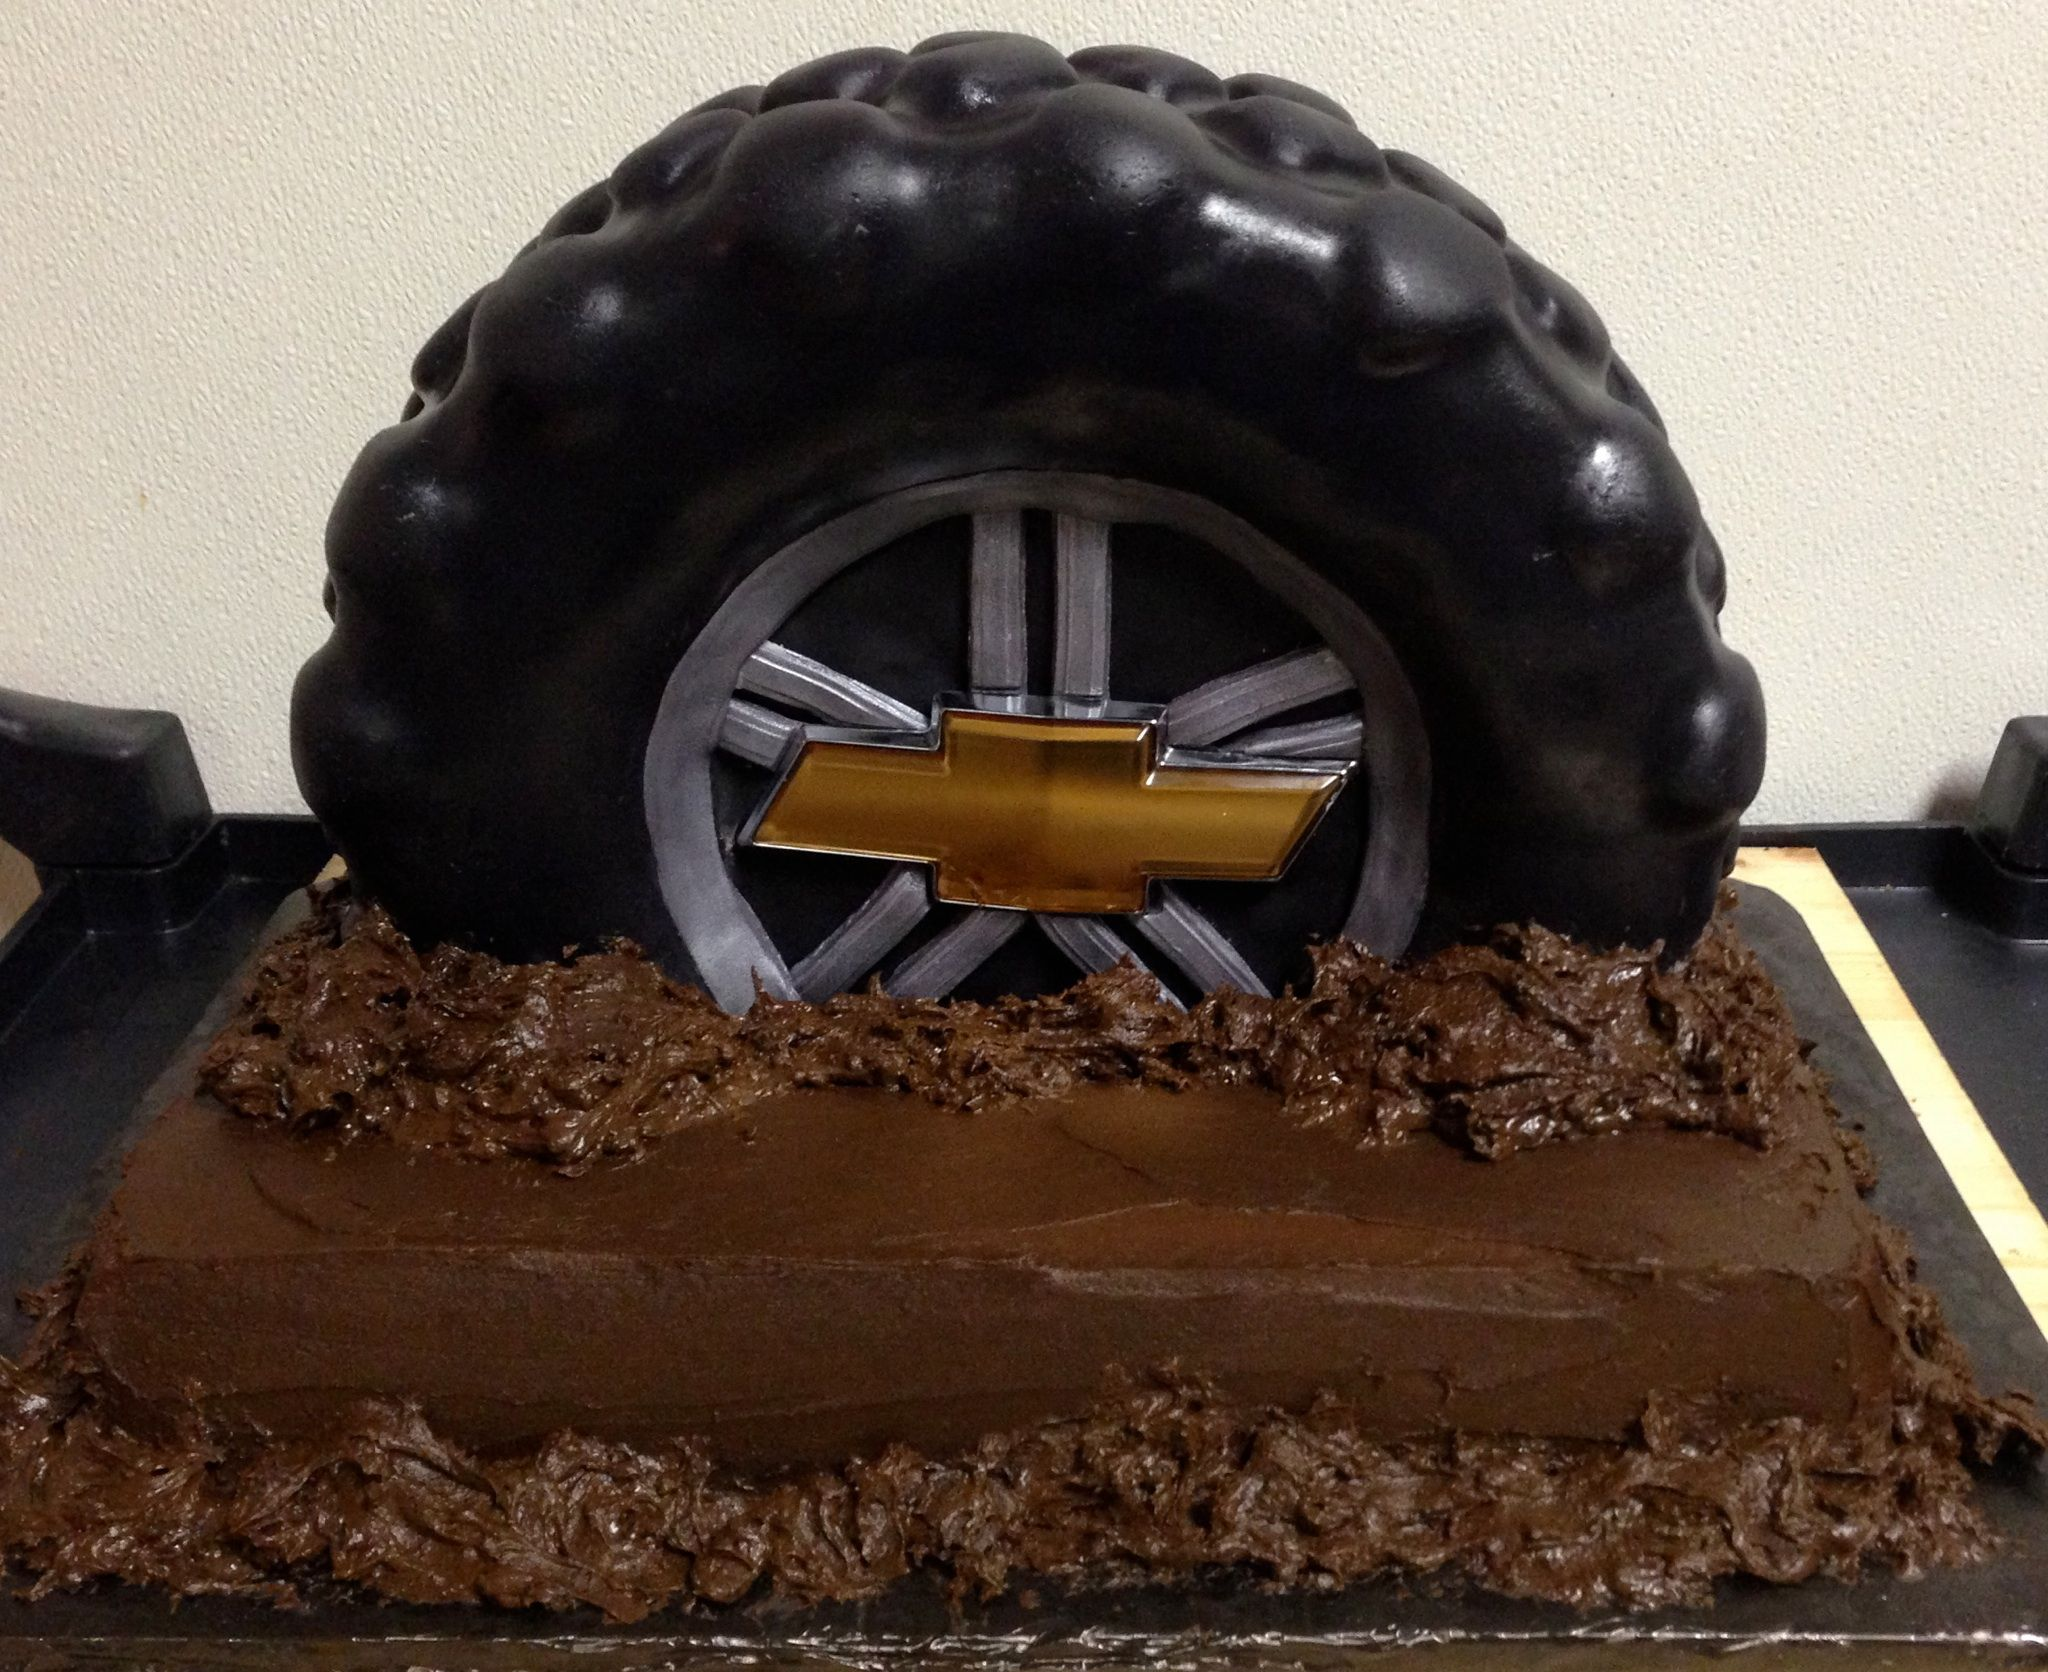 Tire Groom S Cake Truck Birthday Cakes Cars Cake Pops